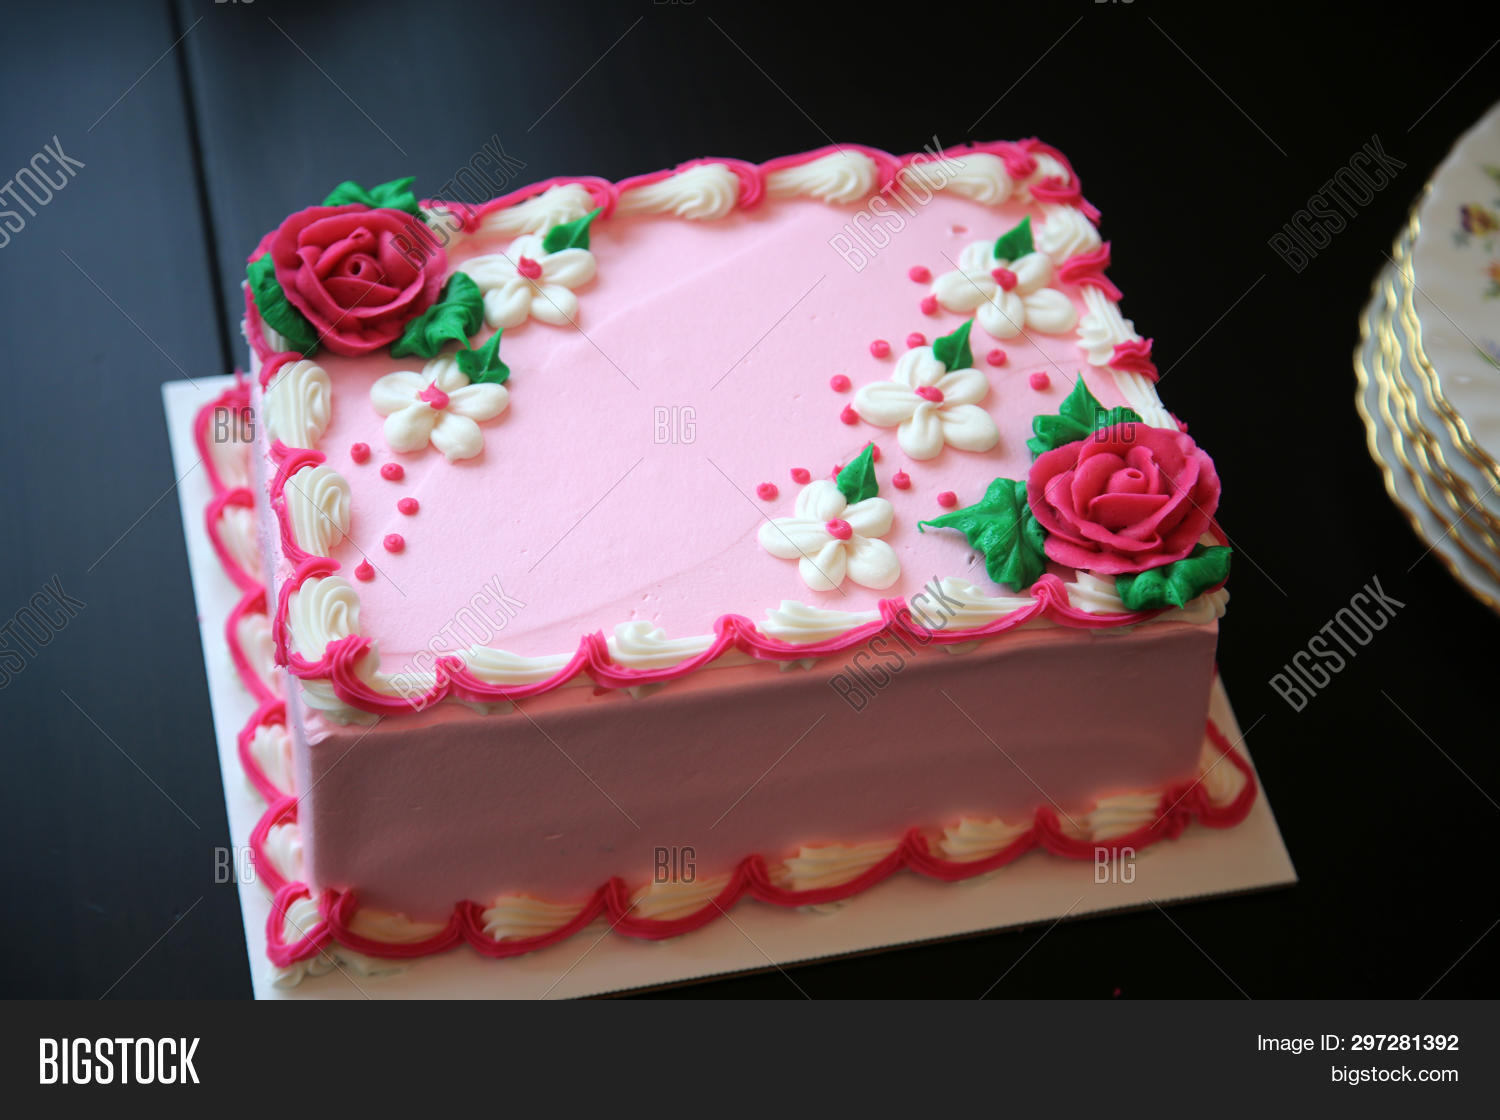 Superb Birthday Cake Pink Image Photo Free Trial Bigstock Personalised Birthday Cards Paralily Jamesorg